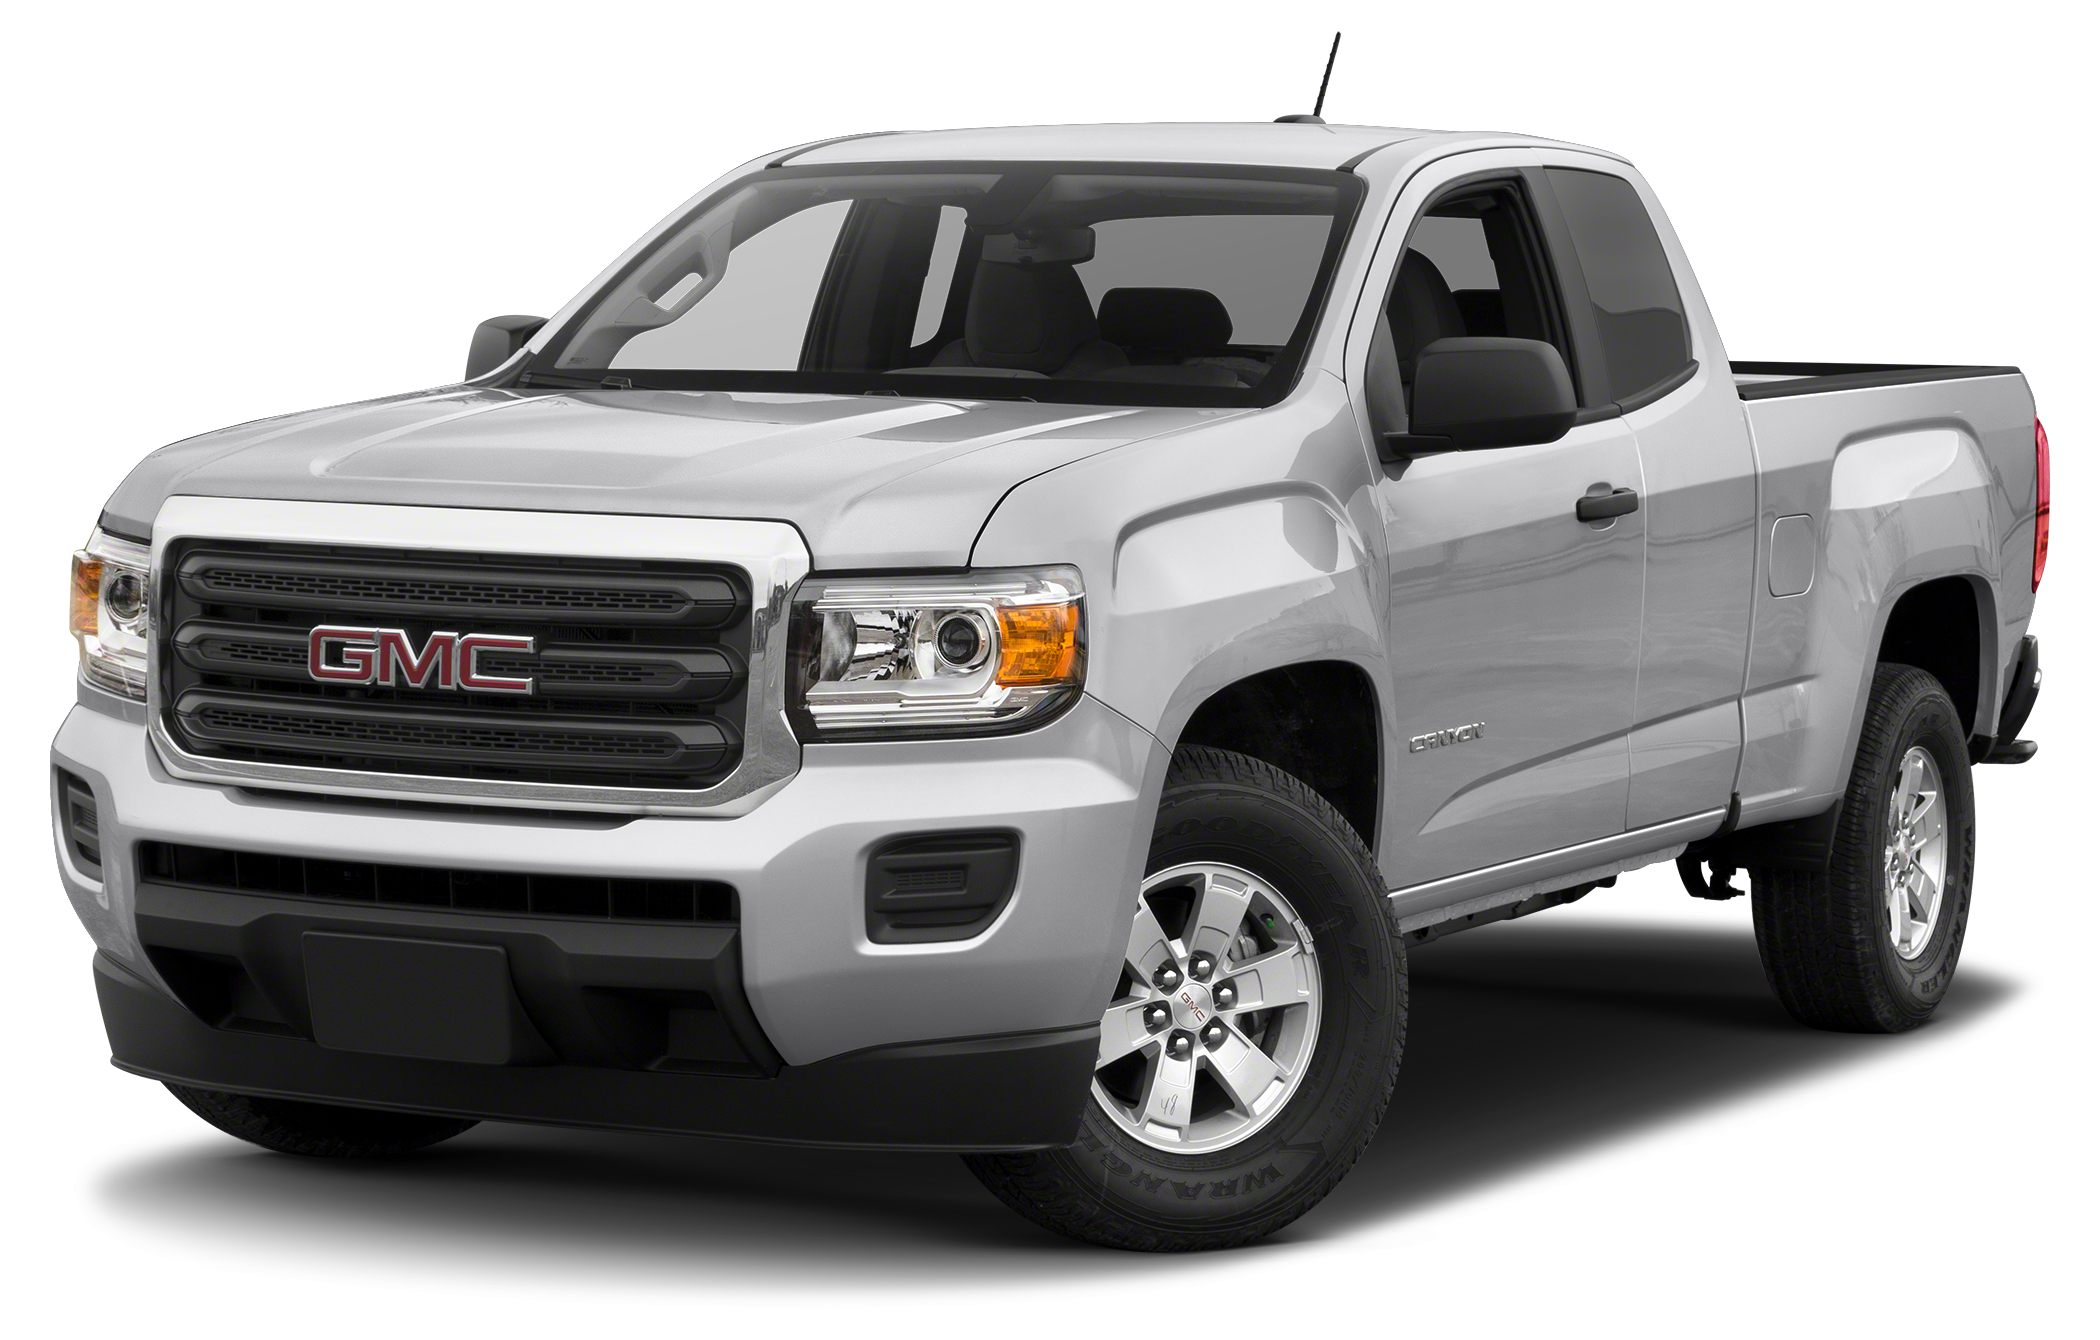 2017 GMC Canyon  Finance Offers based on MSRP2017 GMC Canyon 2WD 4x2 Crew Cab 5 box 1283in WB